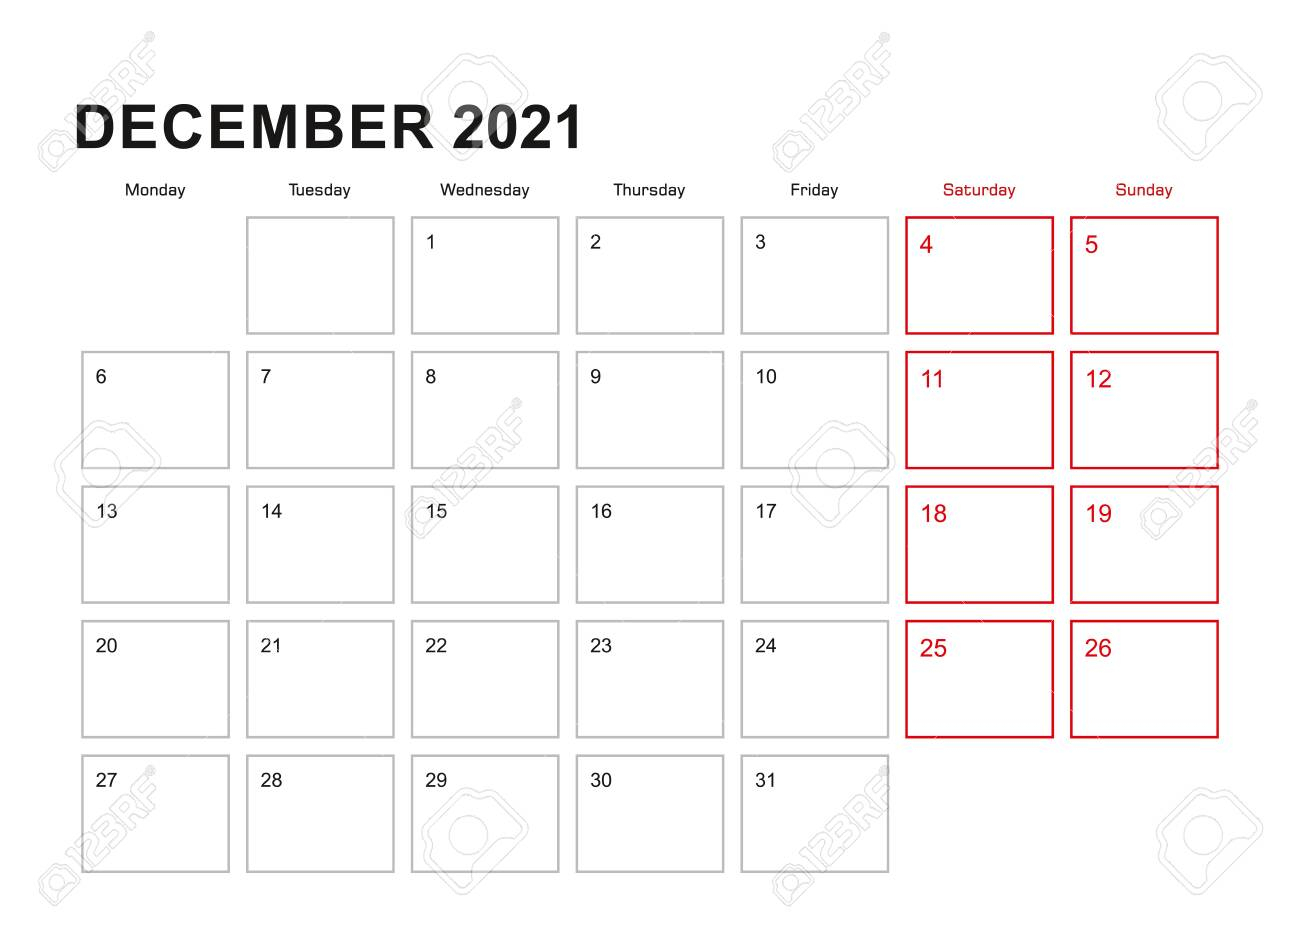 Wall Planner For December 2021 In English Language, Week Starts..